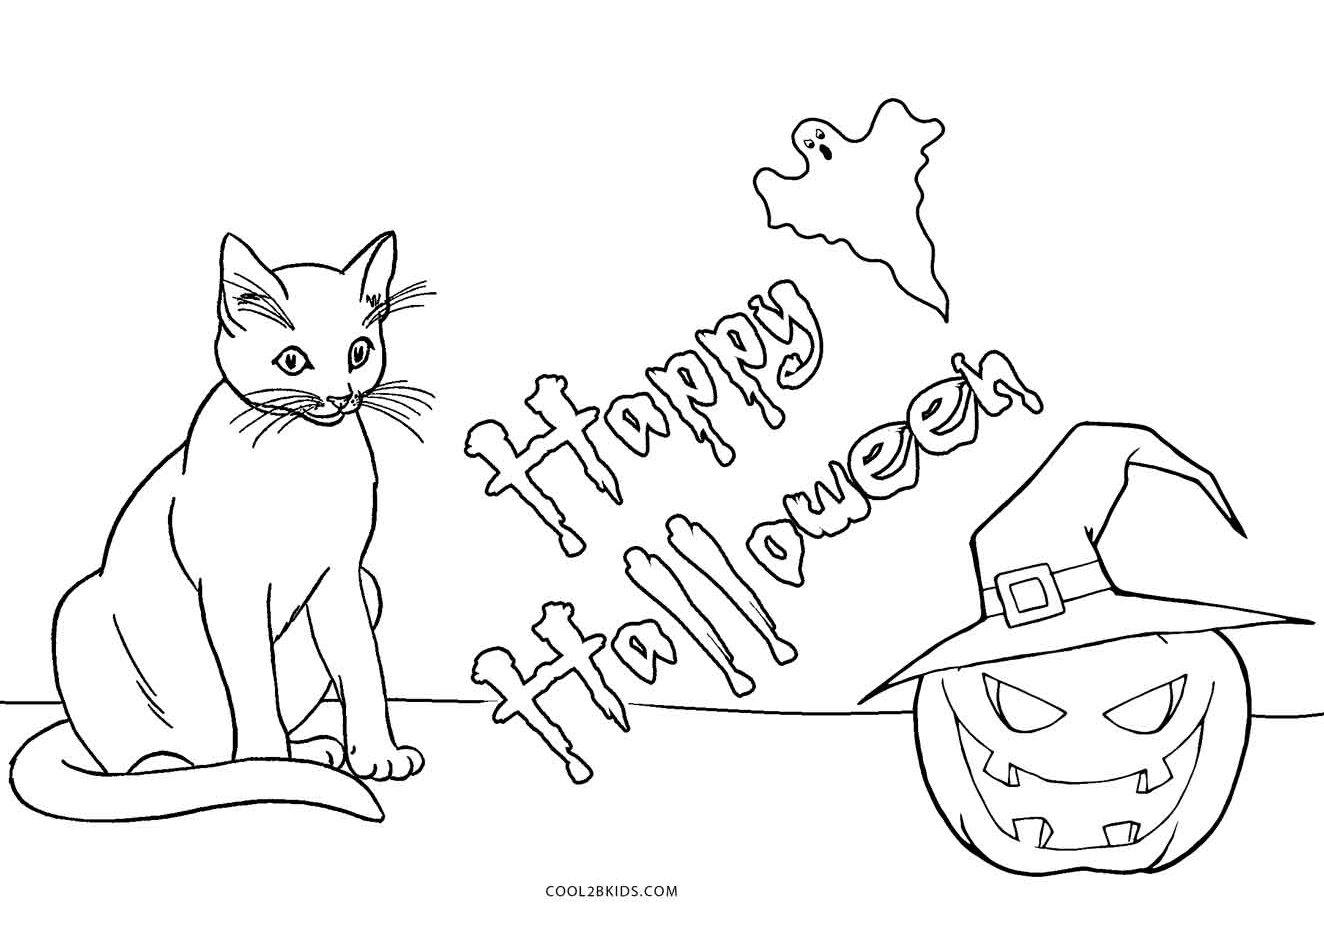 cat pages for coloring - photo#37